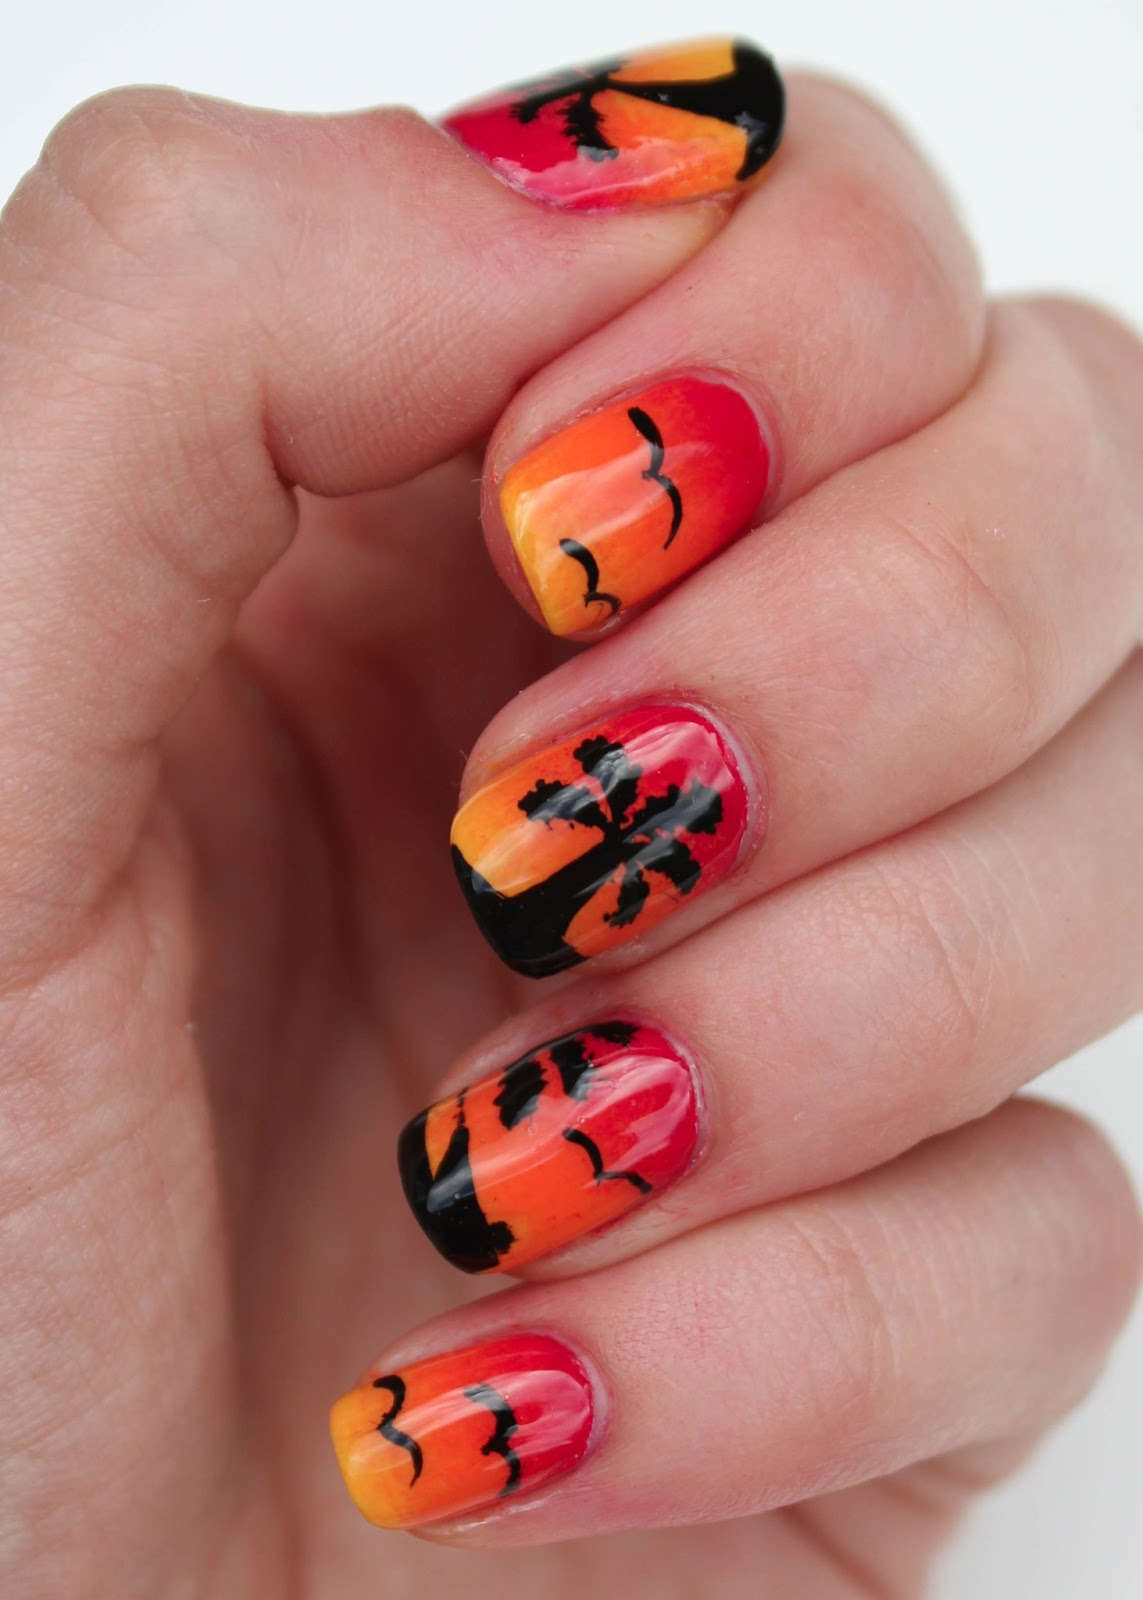 Fundamentally Flawless: Sunset Nail Art with Palm Trees and Birds